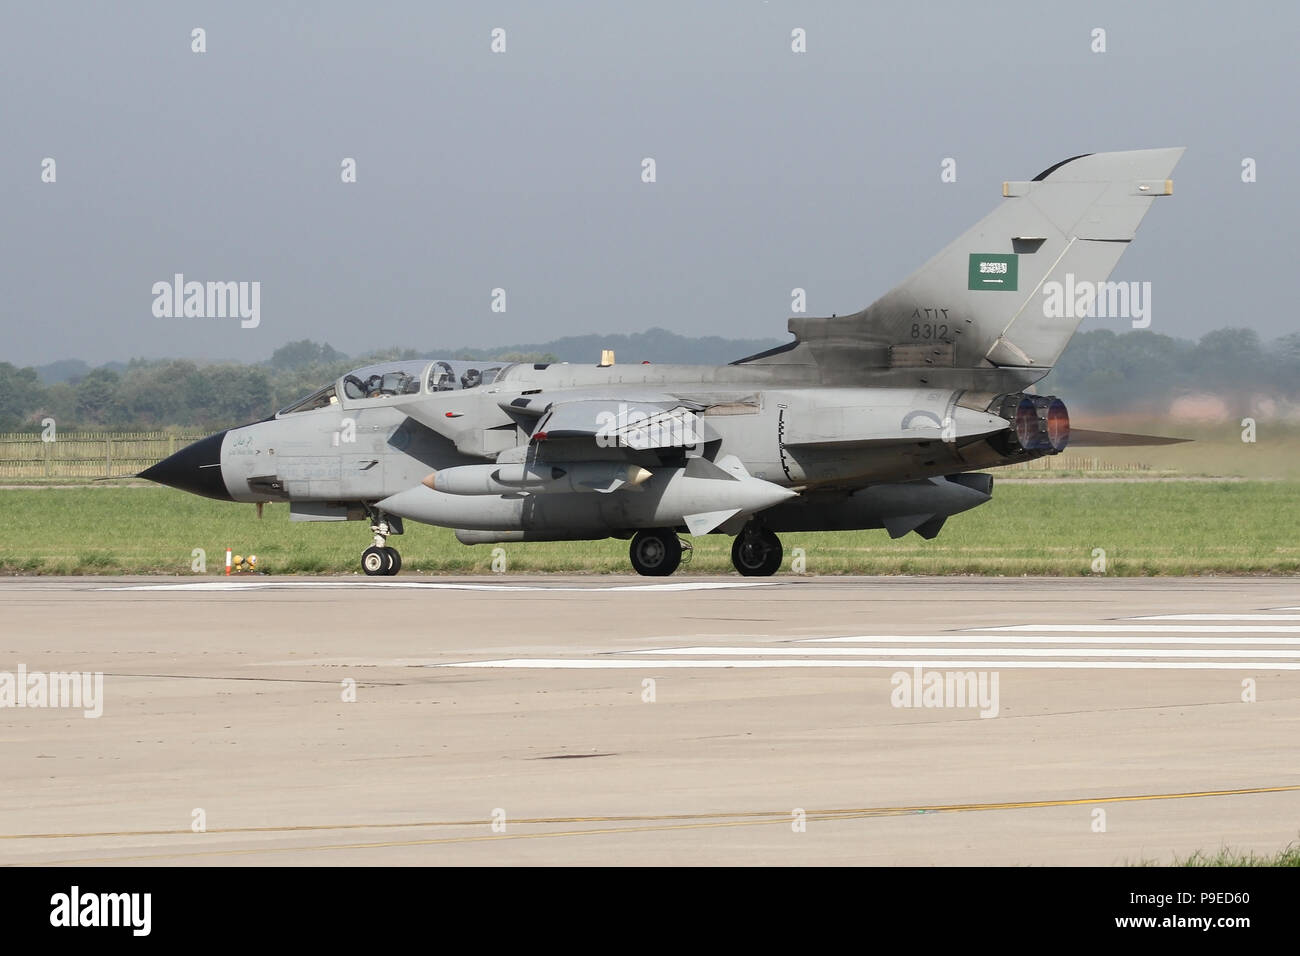 Royal Saudi Air Force Tornado IDS rolling on the RAF Coningsby runway during the combined RAF and RSAF Exercise Green Flag. - Stock Image